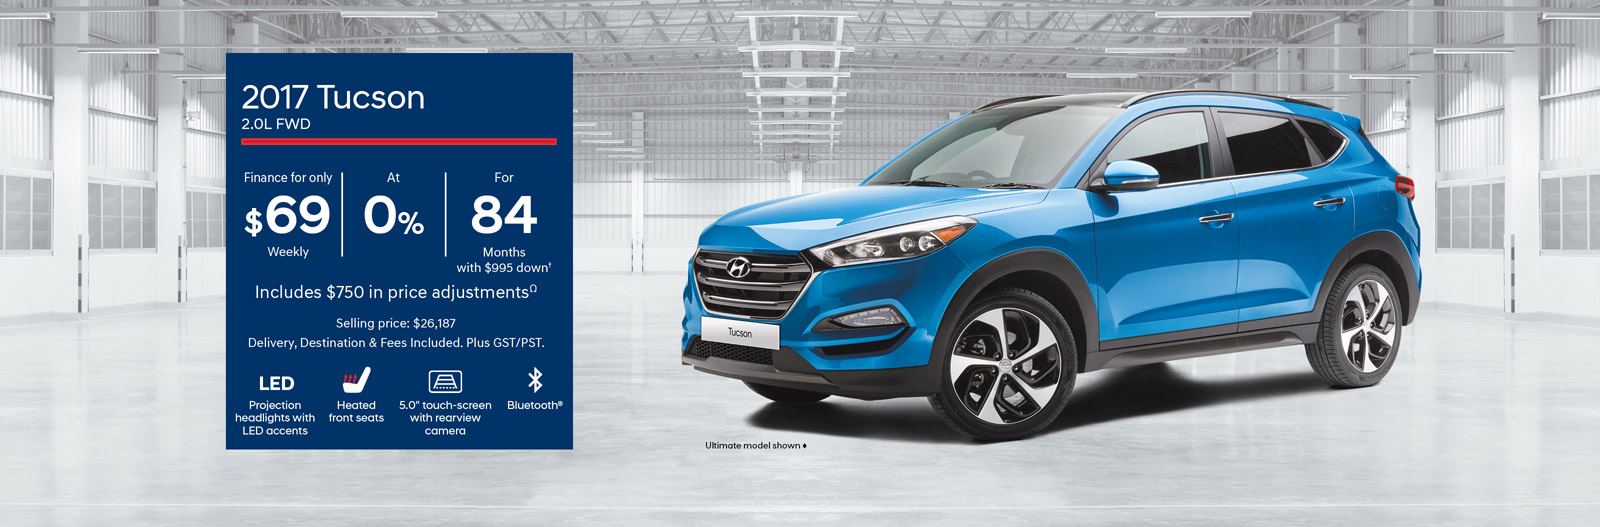 2017 Tucson - Finance from only $69 Weekly